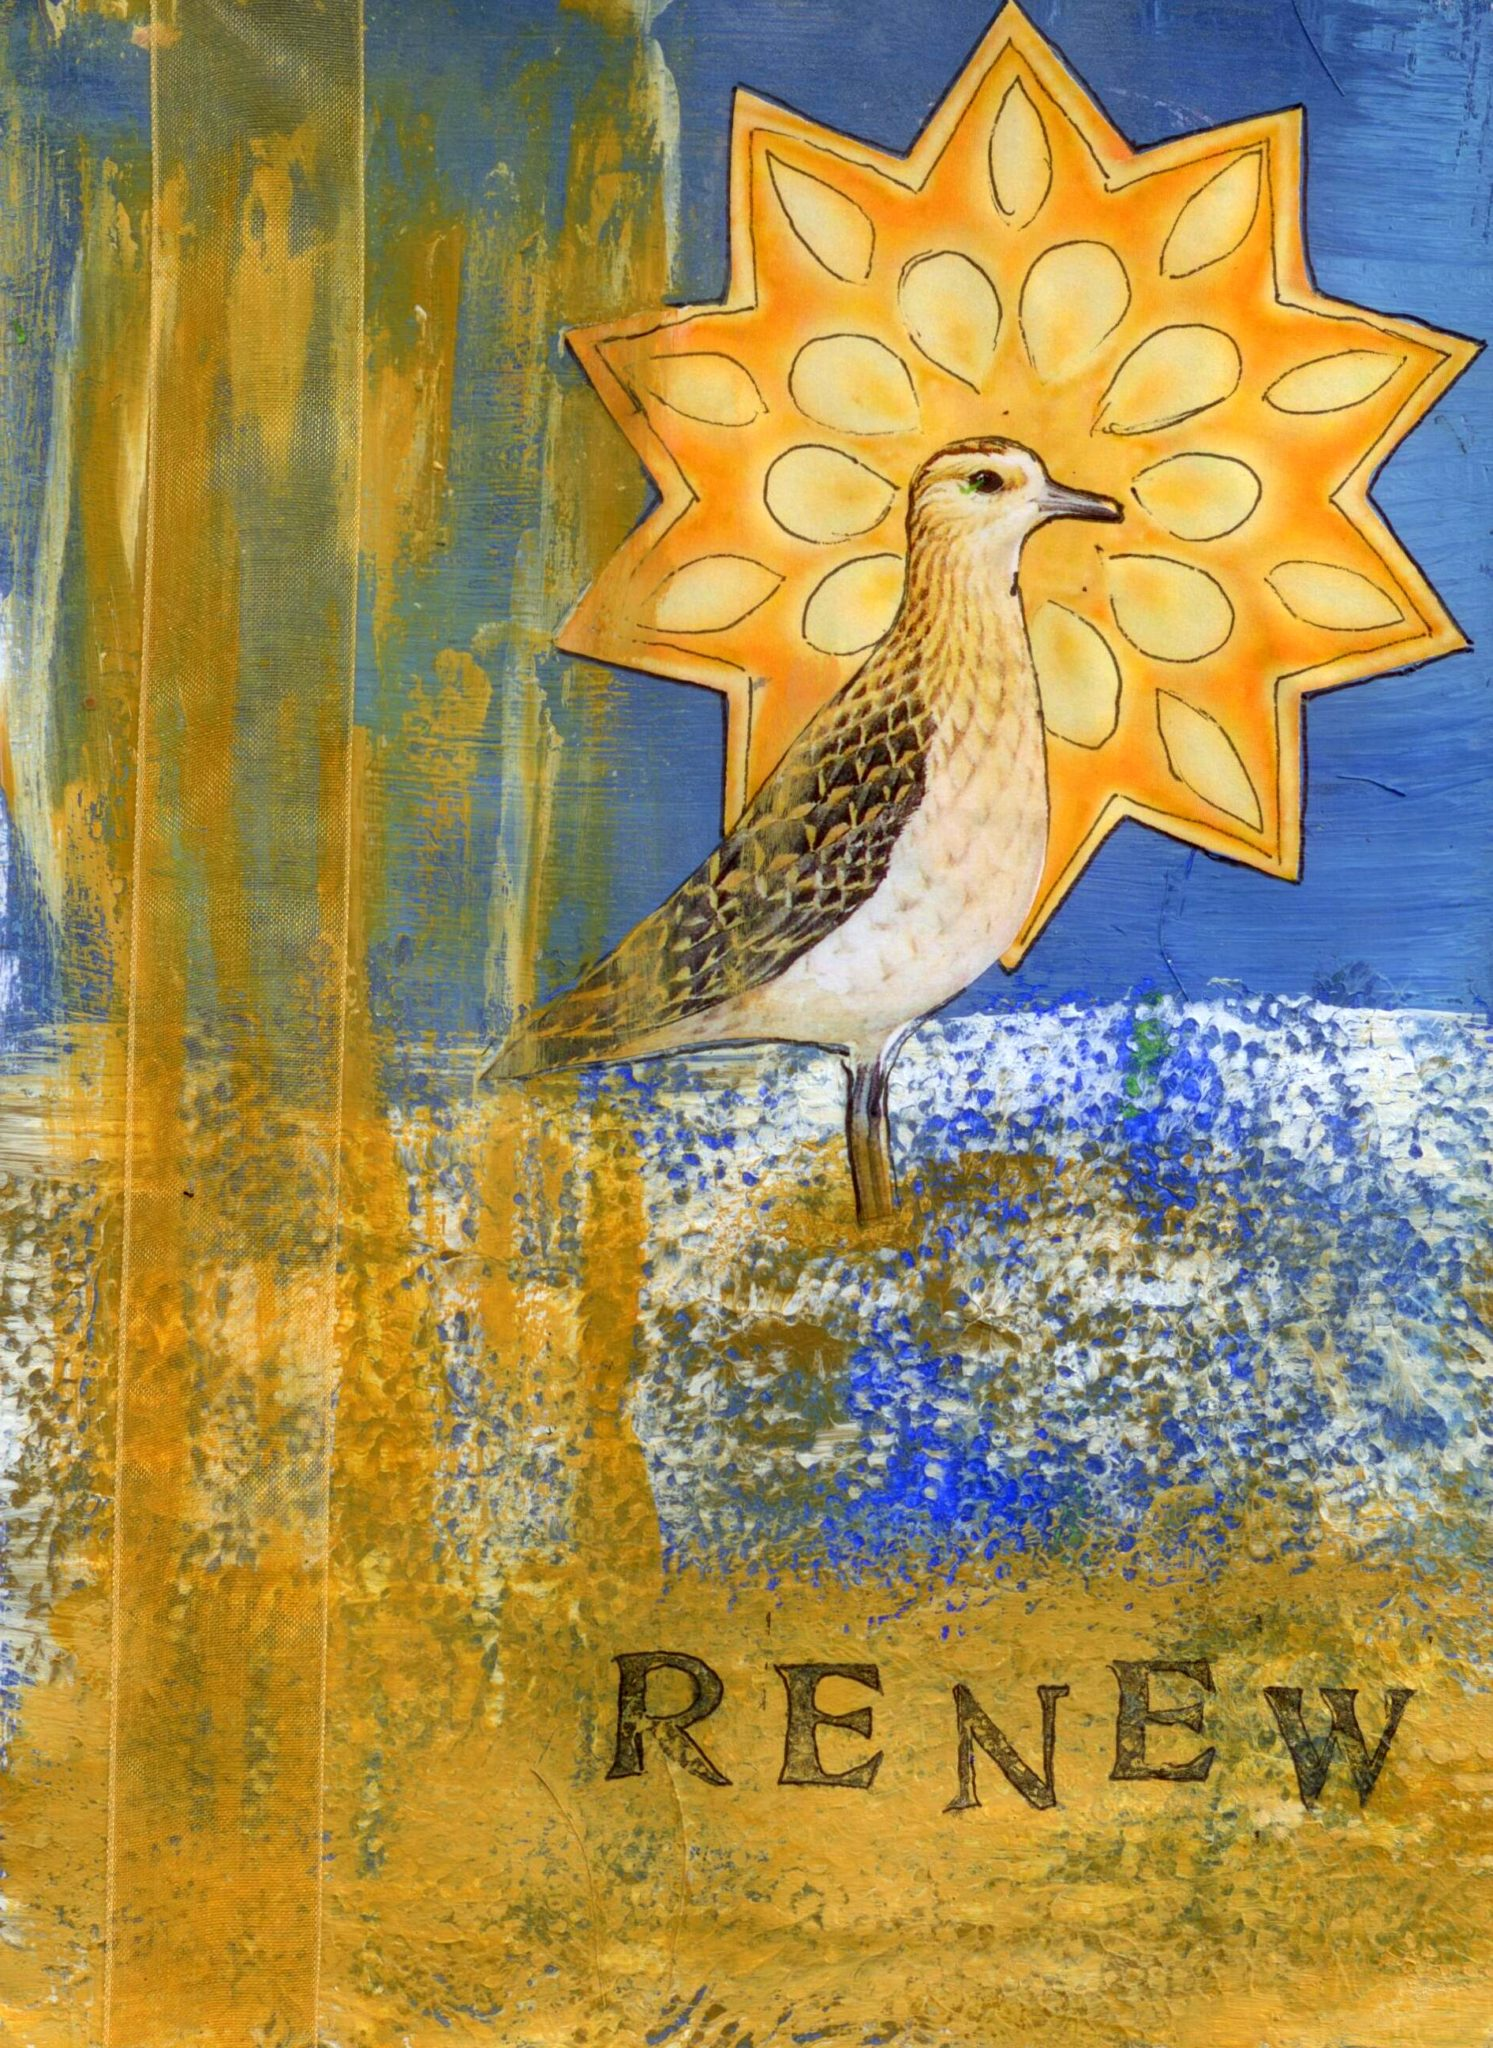 Renewal, mixed media collage by Courtney Putnam